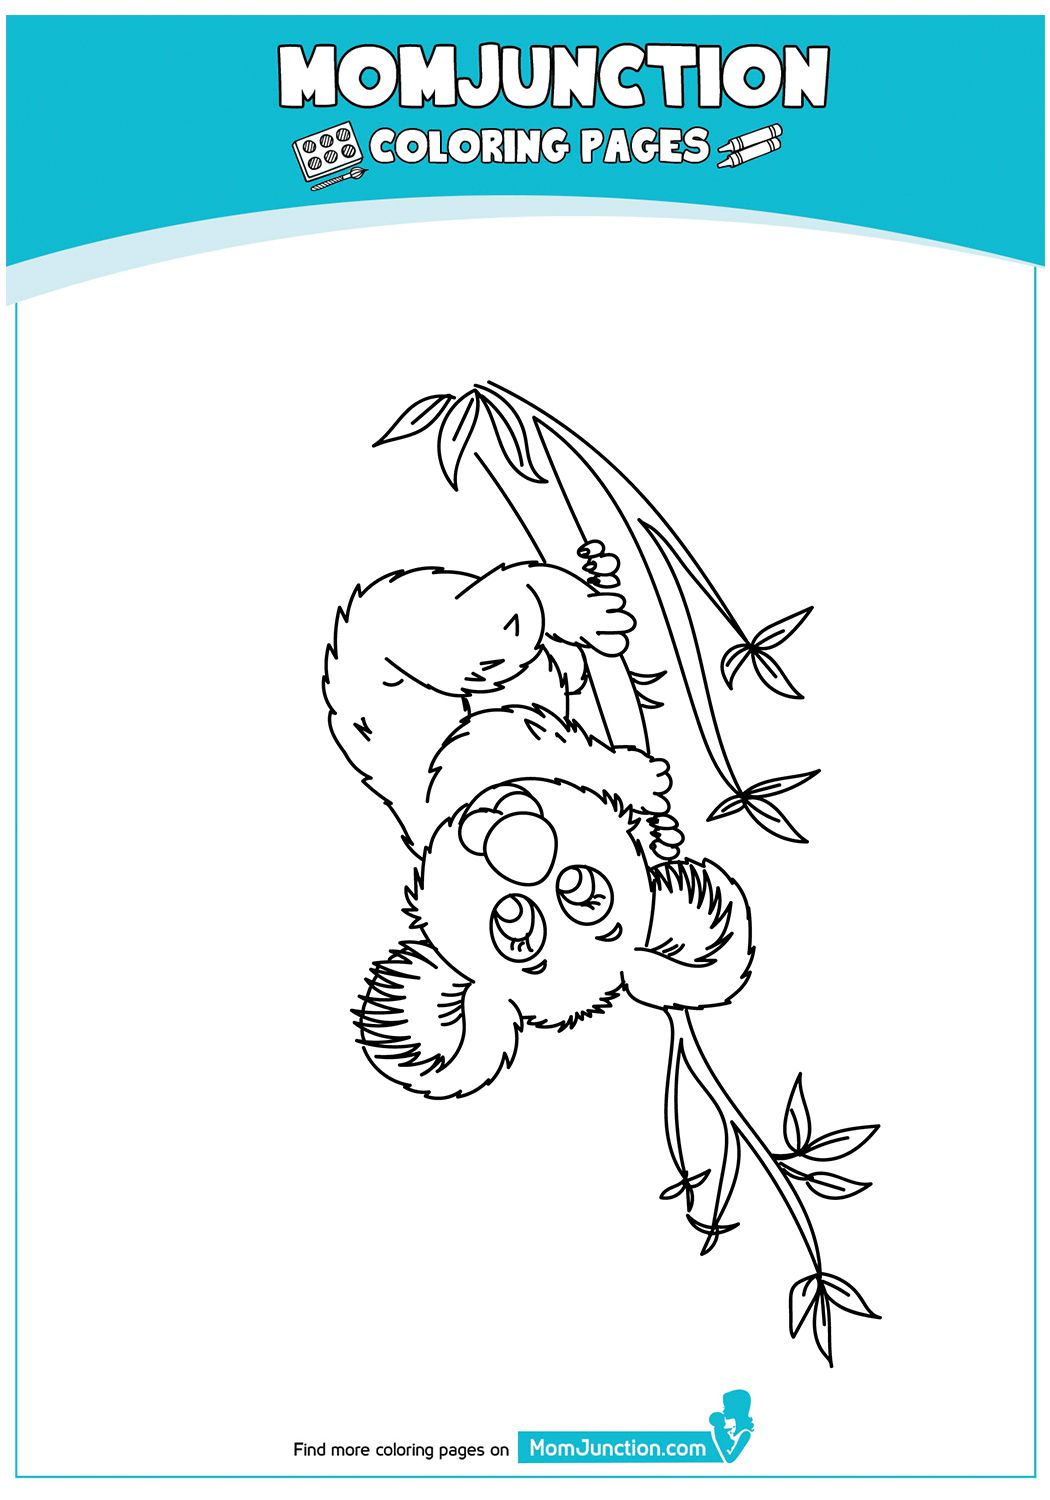 Coloring Page in 2020 Coloring pages, Bear coloring